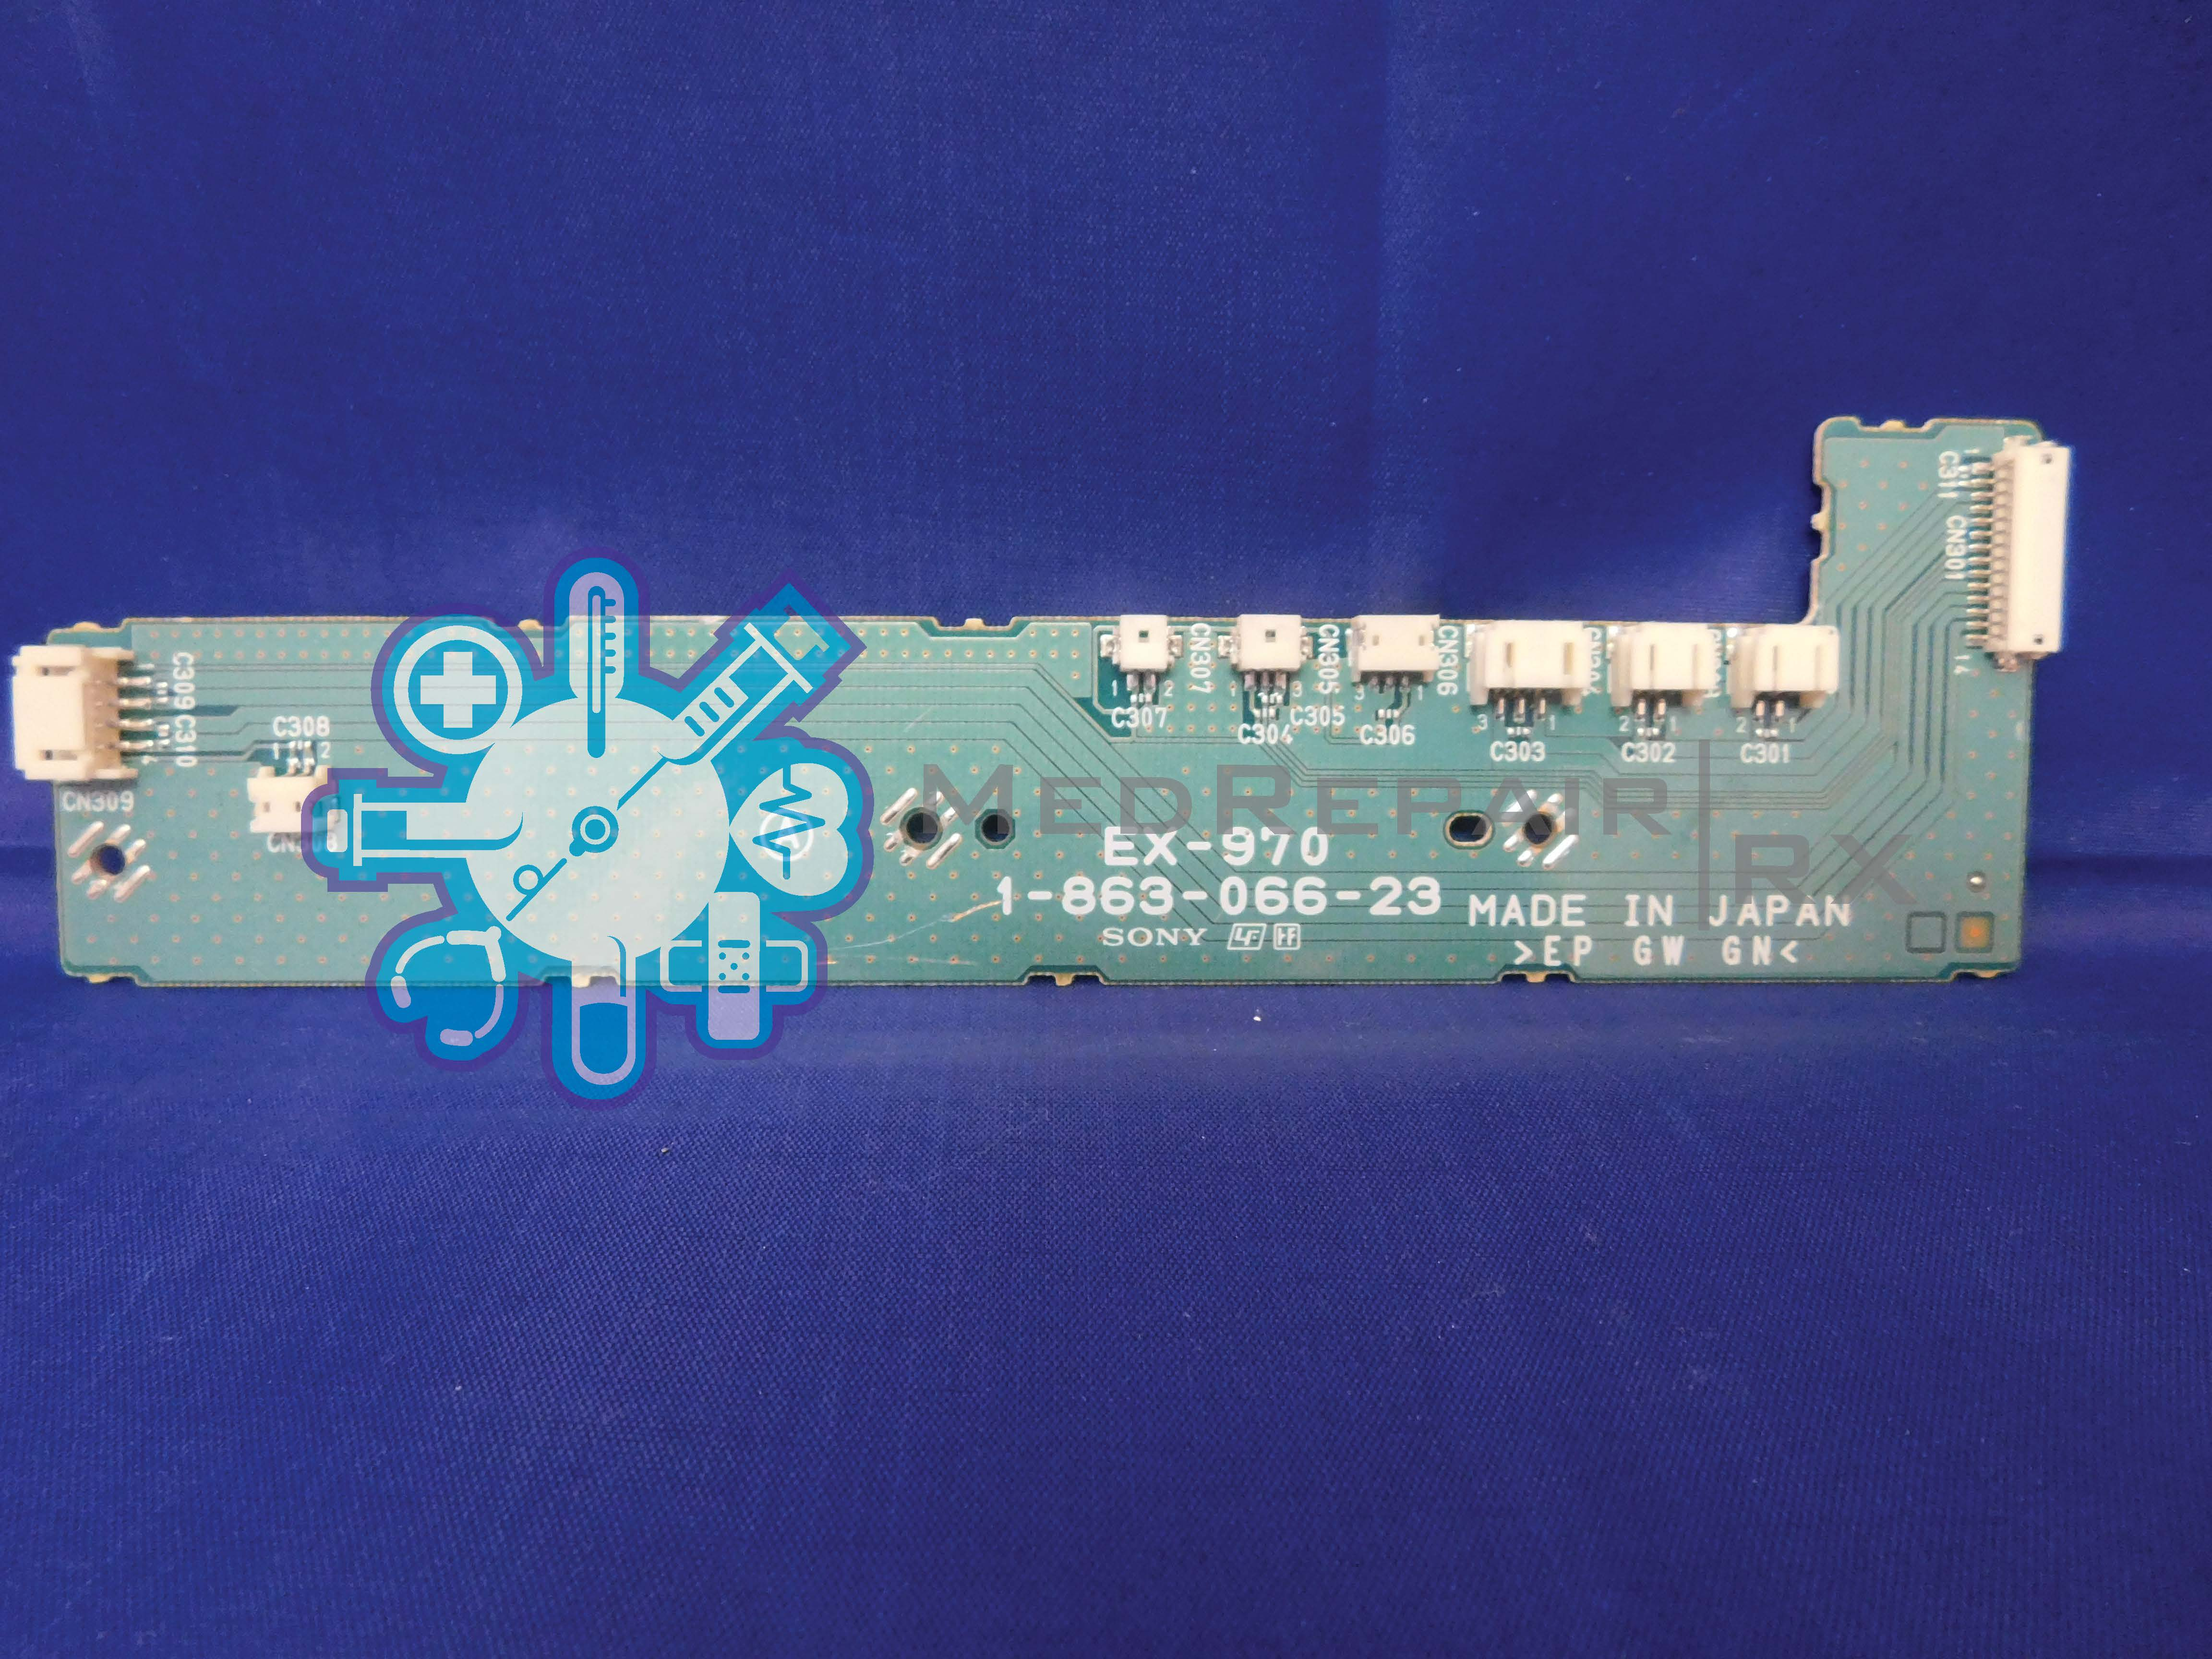 Sony OEP-4 Circuit Board EX-970 1-863-066-23 : MedRepair Rx, LLC